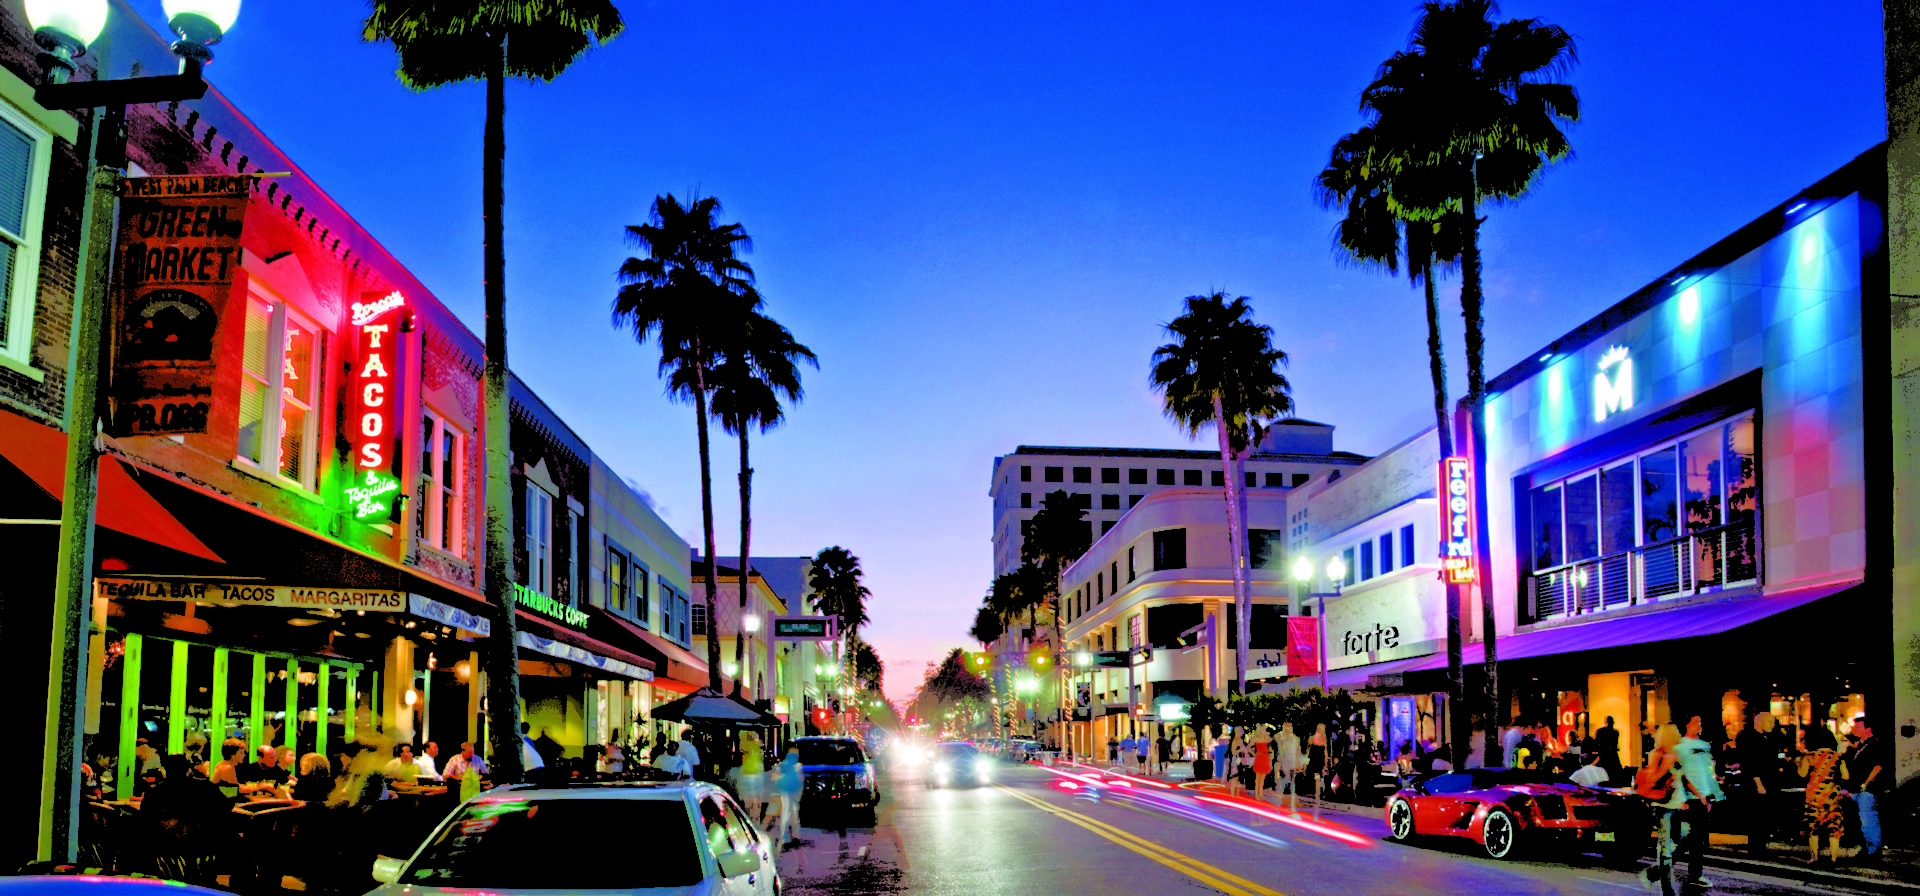 image of down town palm beach fl